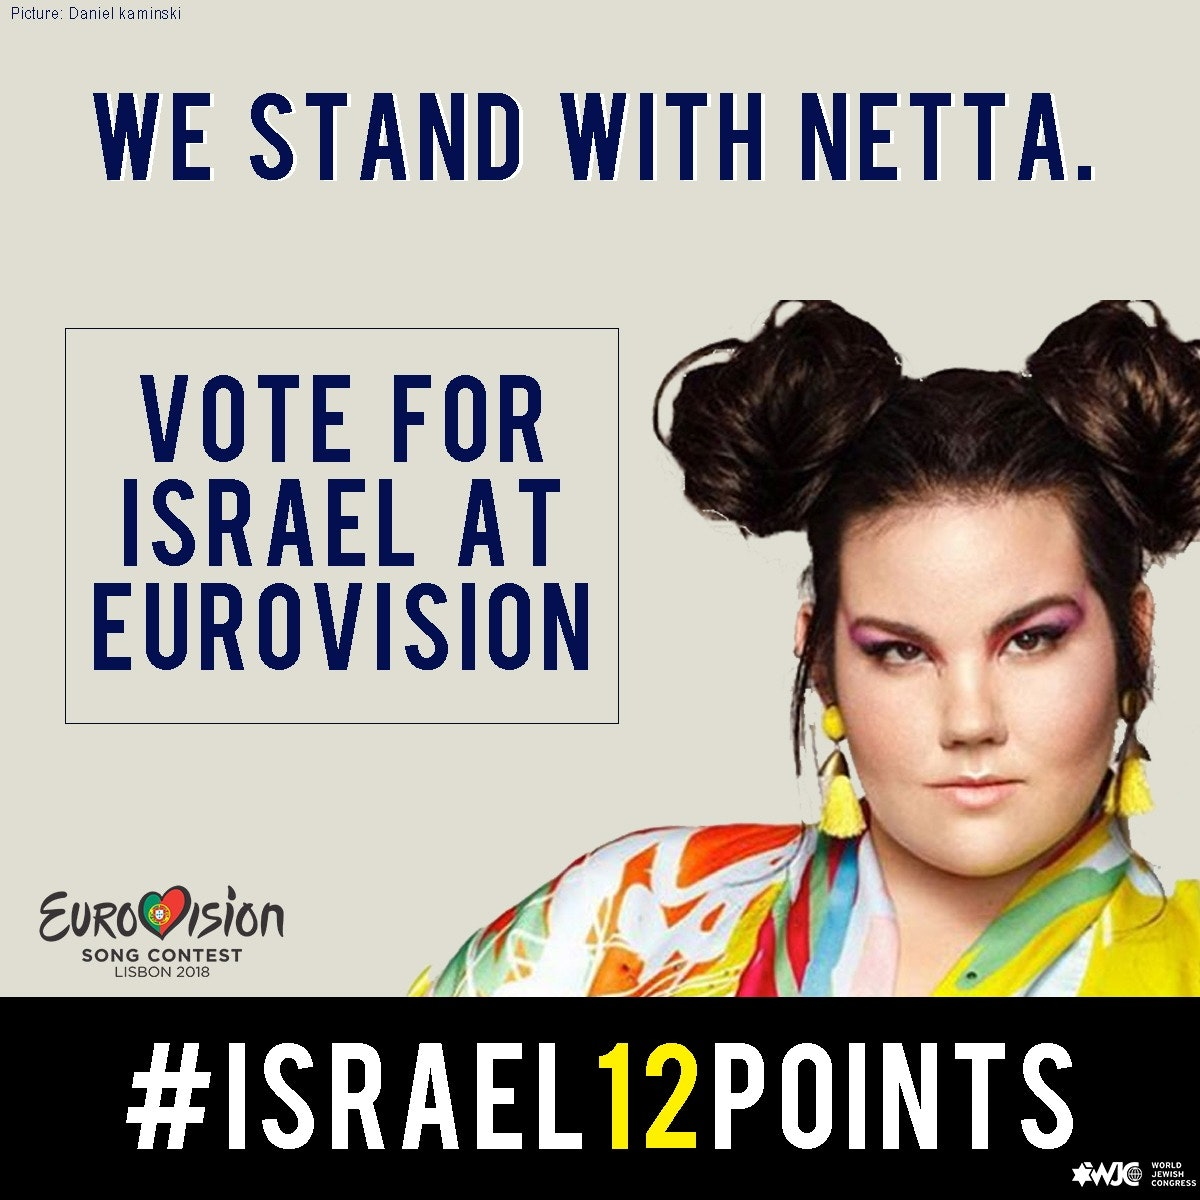 We stand with netta